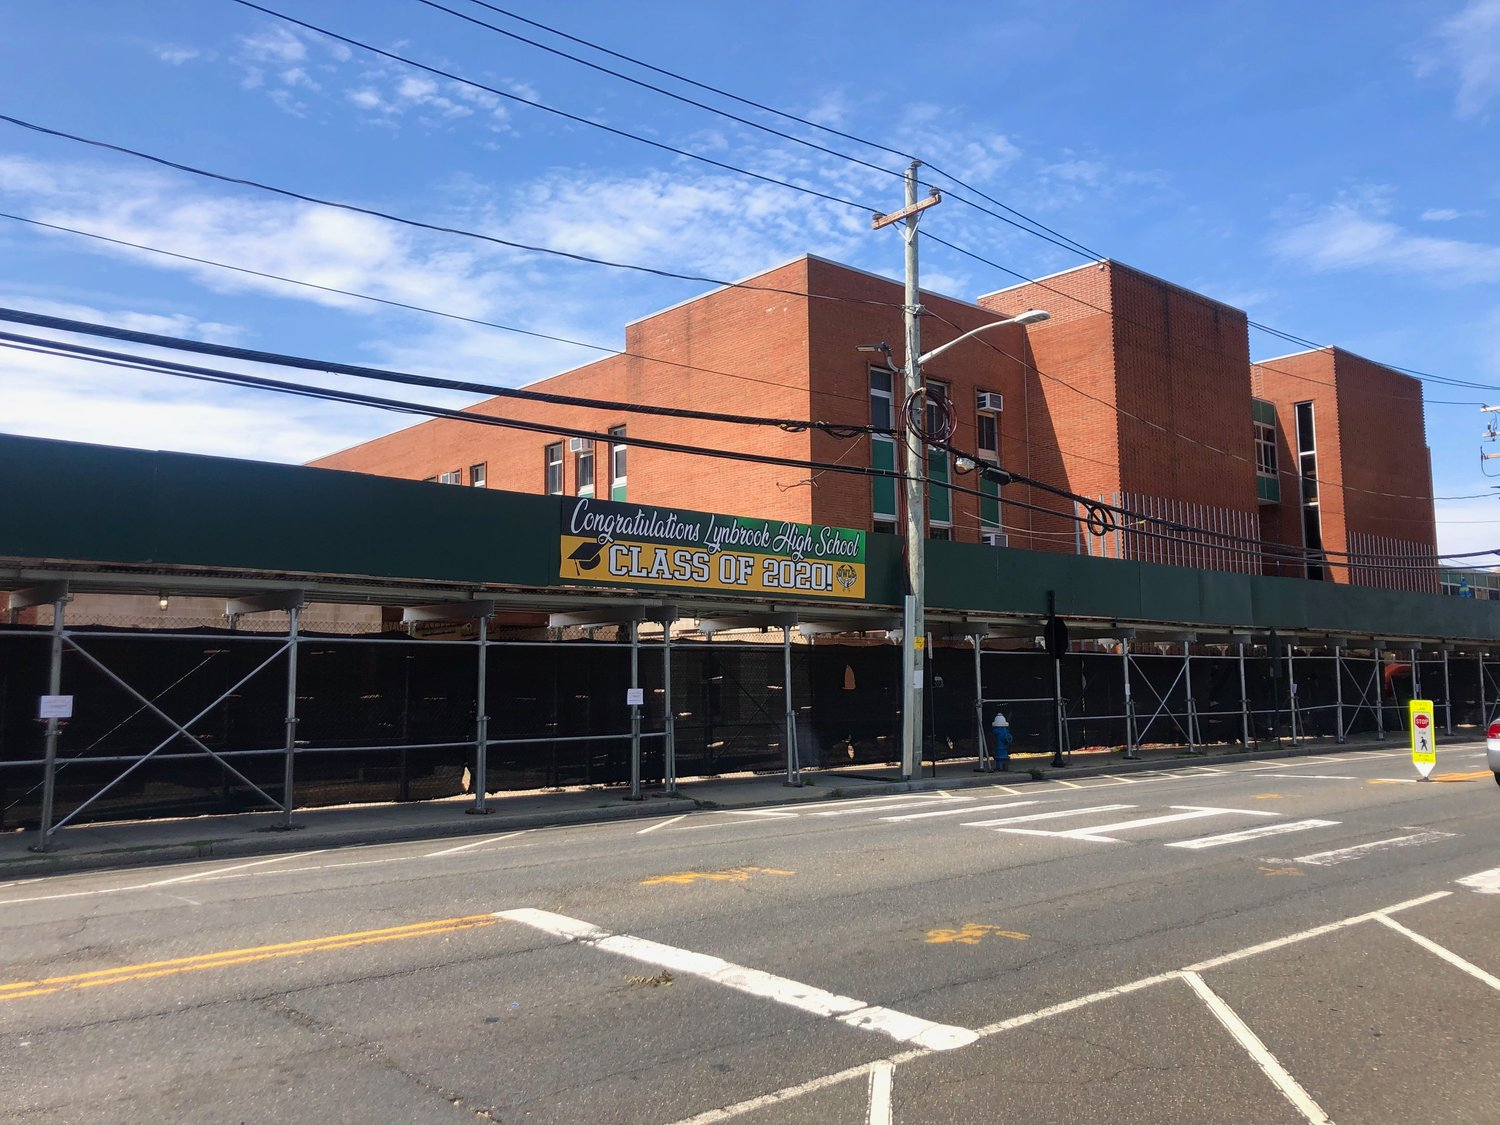 After a delay caused by the coronaivirus, renovations at Lynbrook High School and other district buildings are back on track.